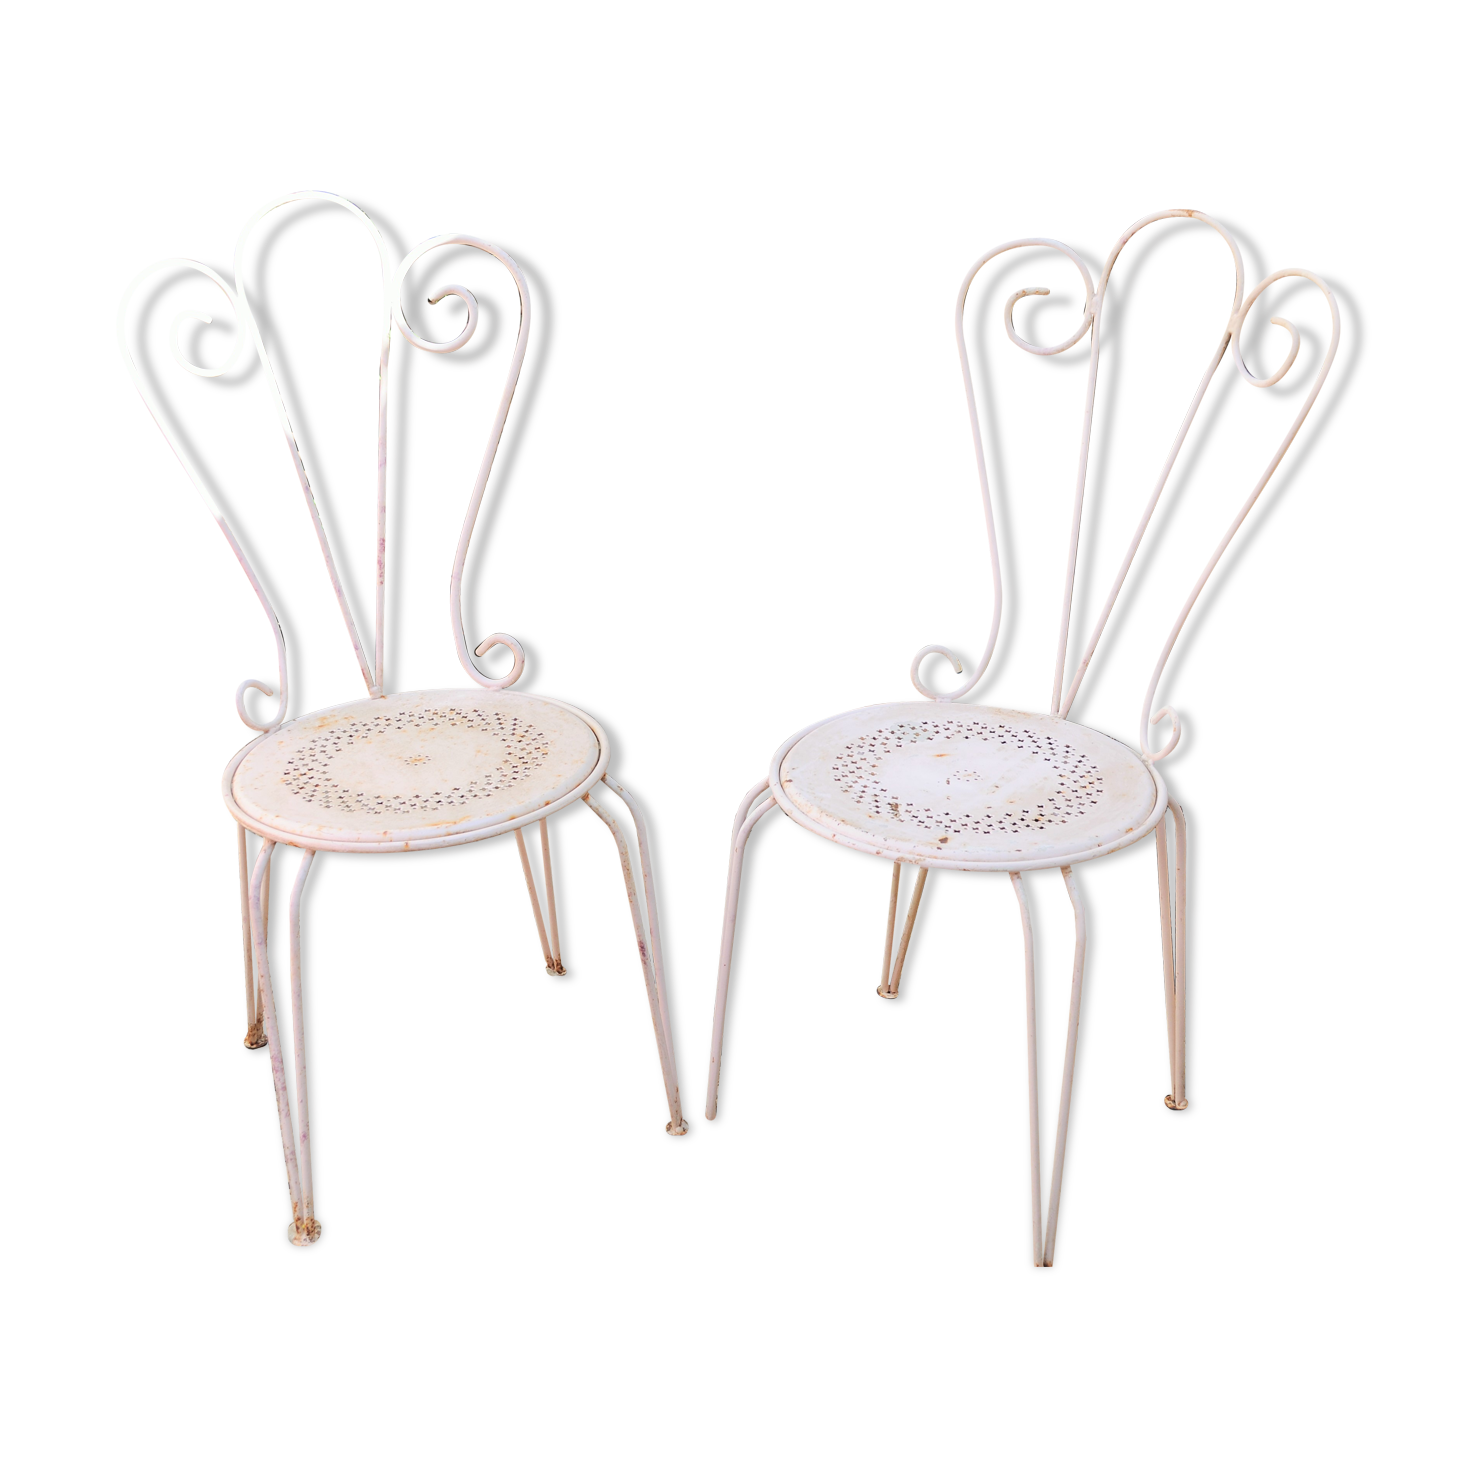 pair of years 40 50 white metal garden chairs metal white 50s Style Man Cave pair of years 40 50 white metal garden chairs